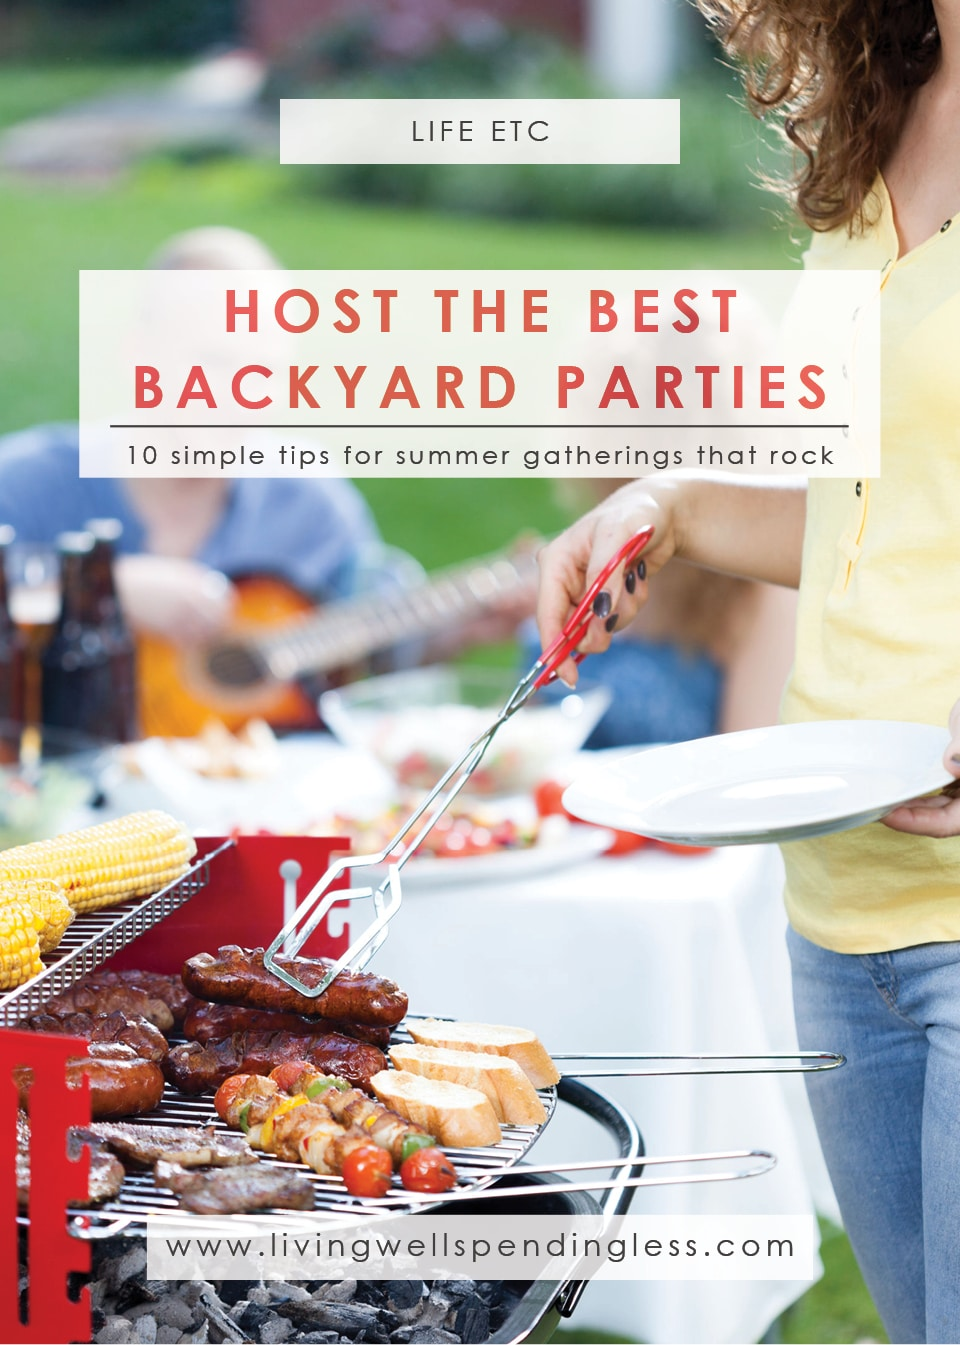 How to Host the Best Backyard Parties